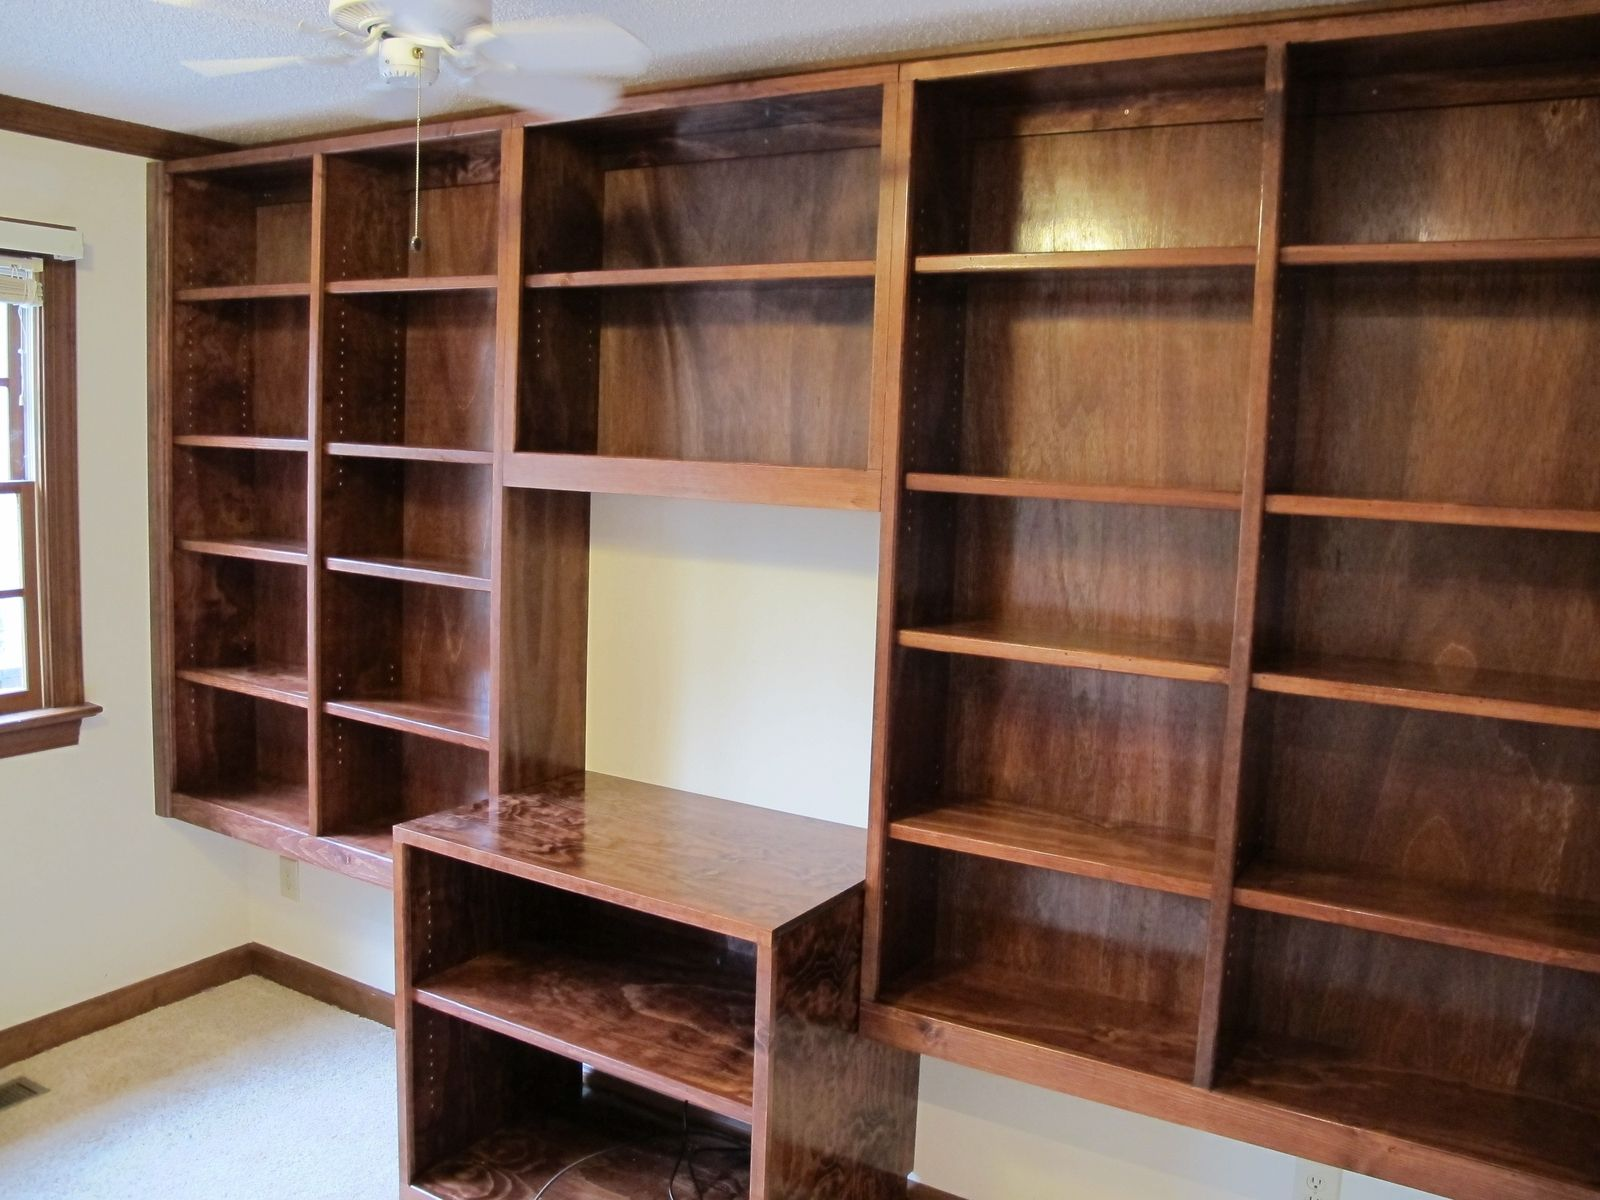 Handmade Built In Bookshelves By Carolina Woodworking